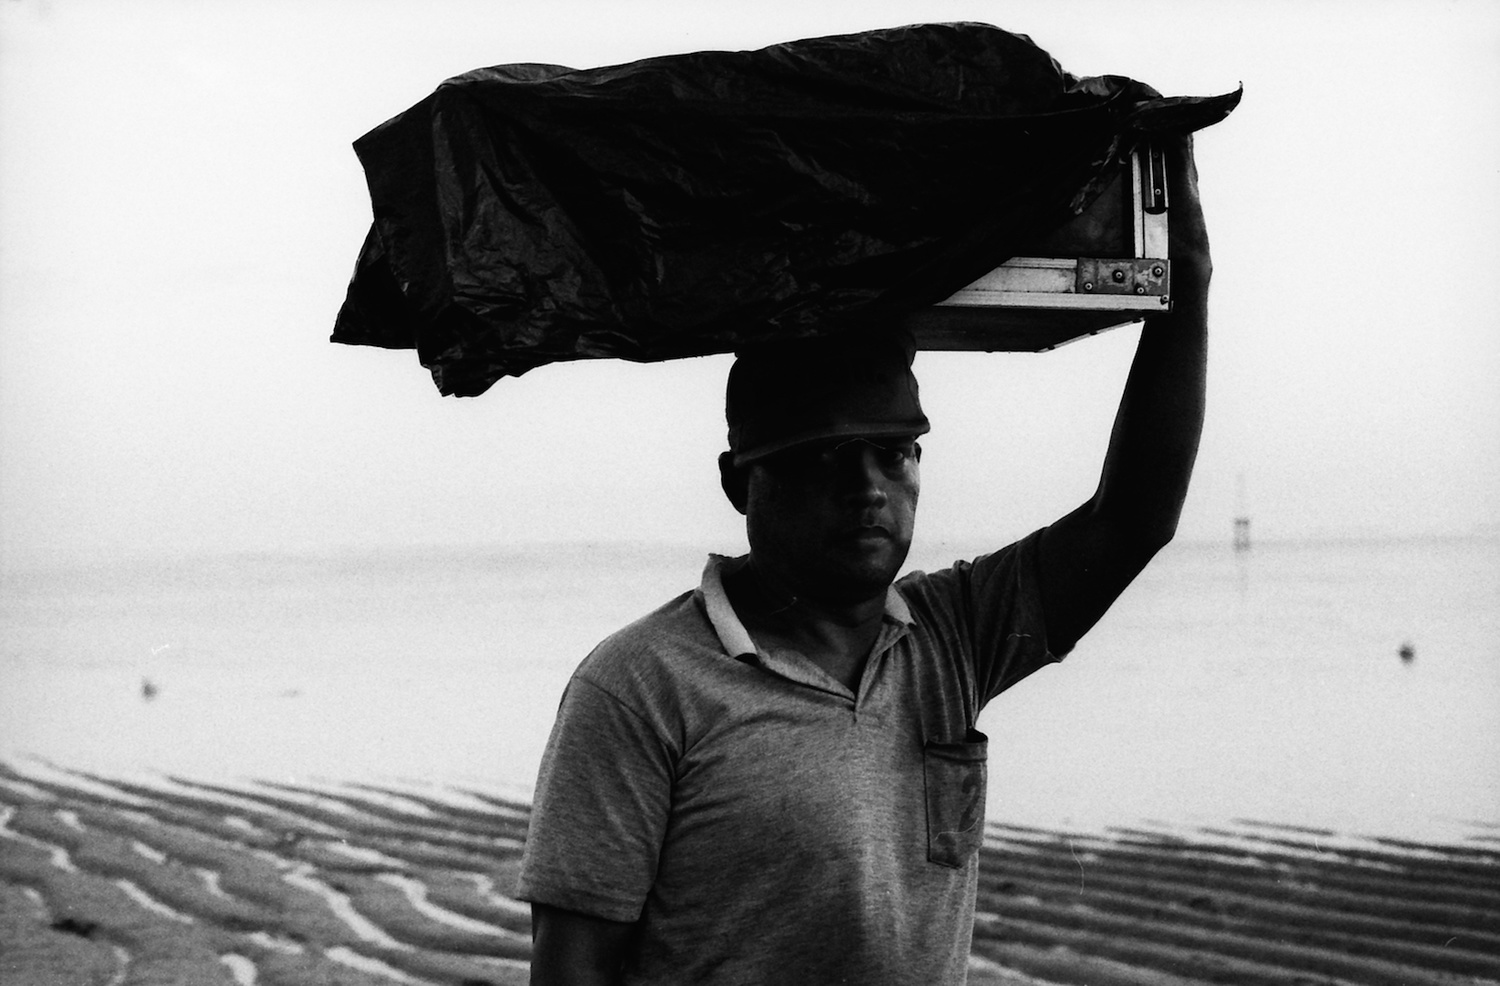 Portrait of a food vendor in the last light of the day by Mark Chaves